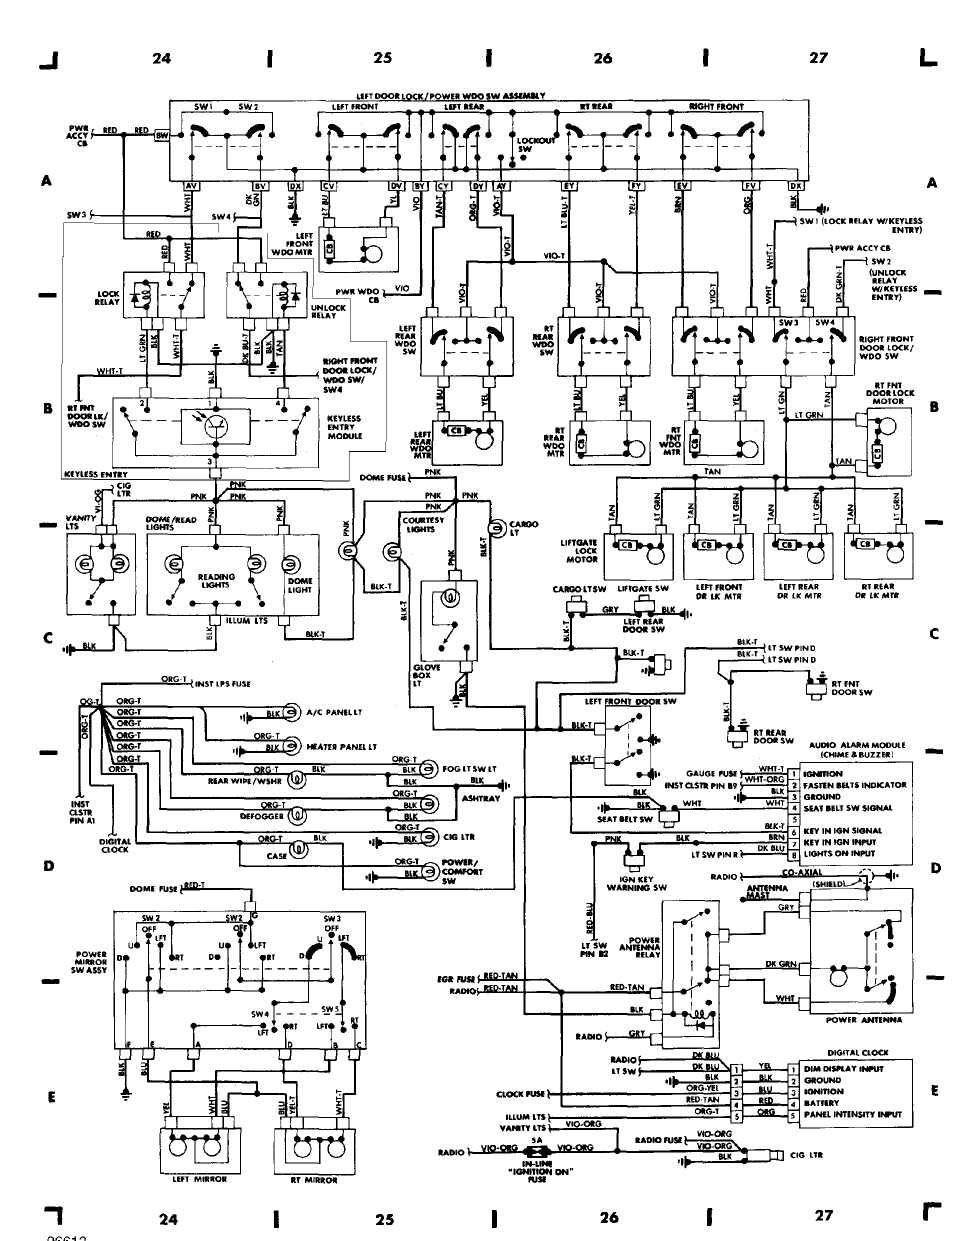 wiring_diagrams_html_61f5e0ad wiring diagrams 1984 1991 jeep cherokee (xj) jeep 1990 jeep cherokee wiring diagram at reclaimingppi.co